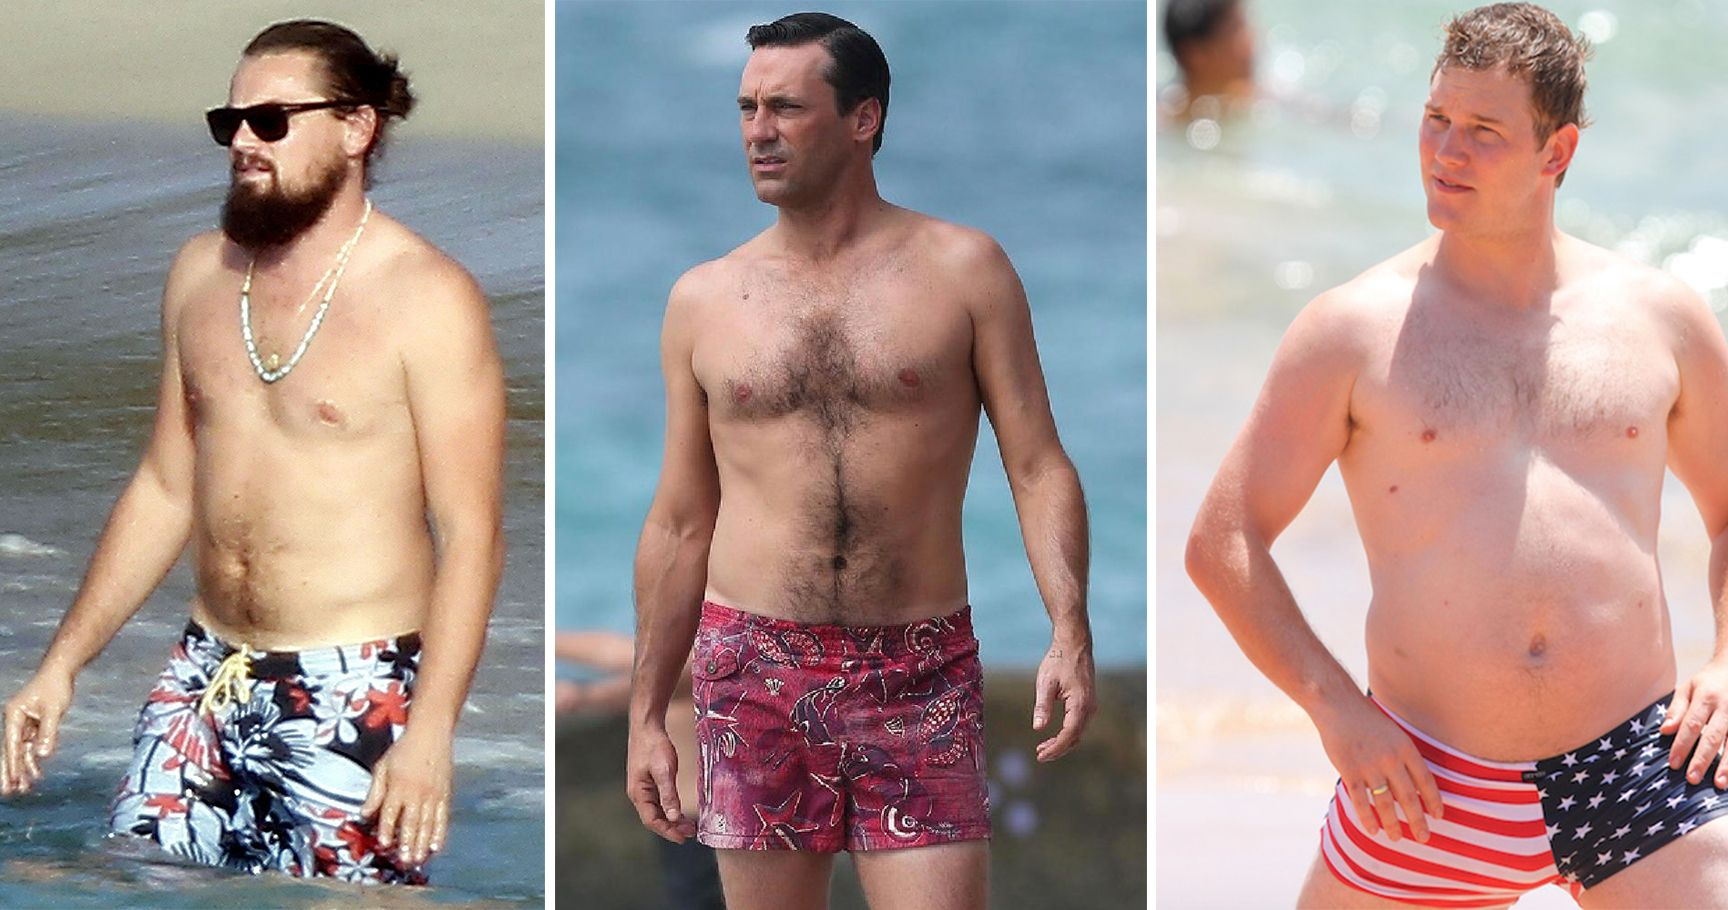 Who has the best Dad Bod? - GirlsAskGuys